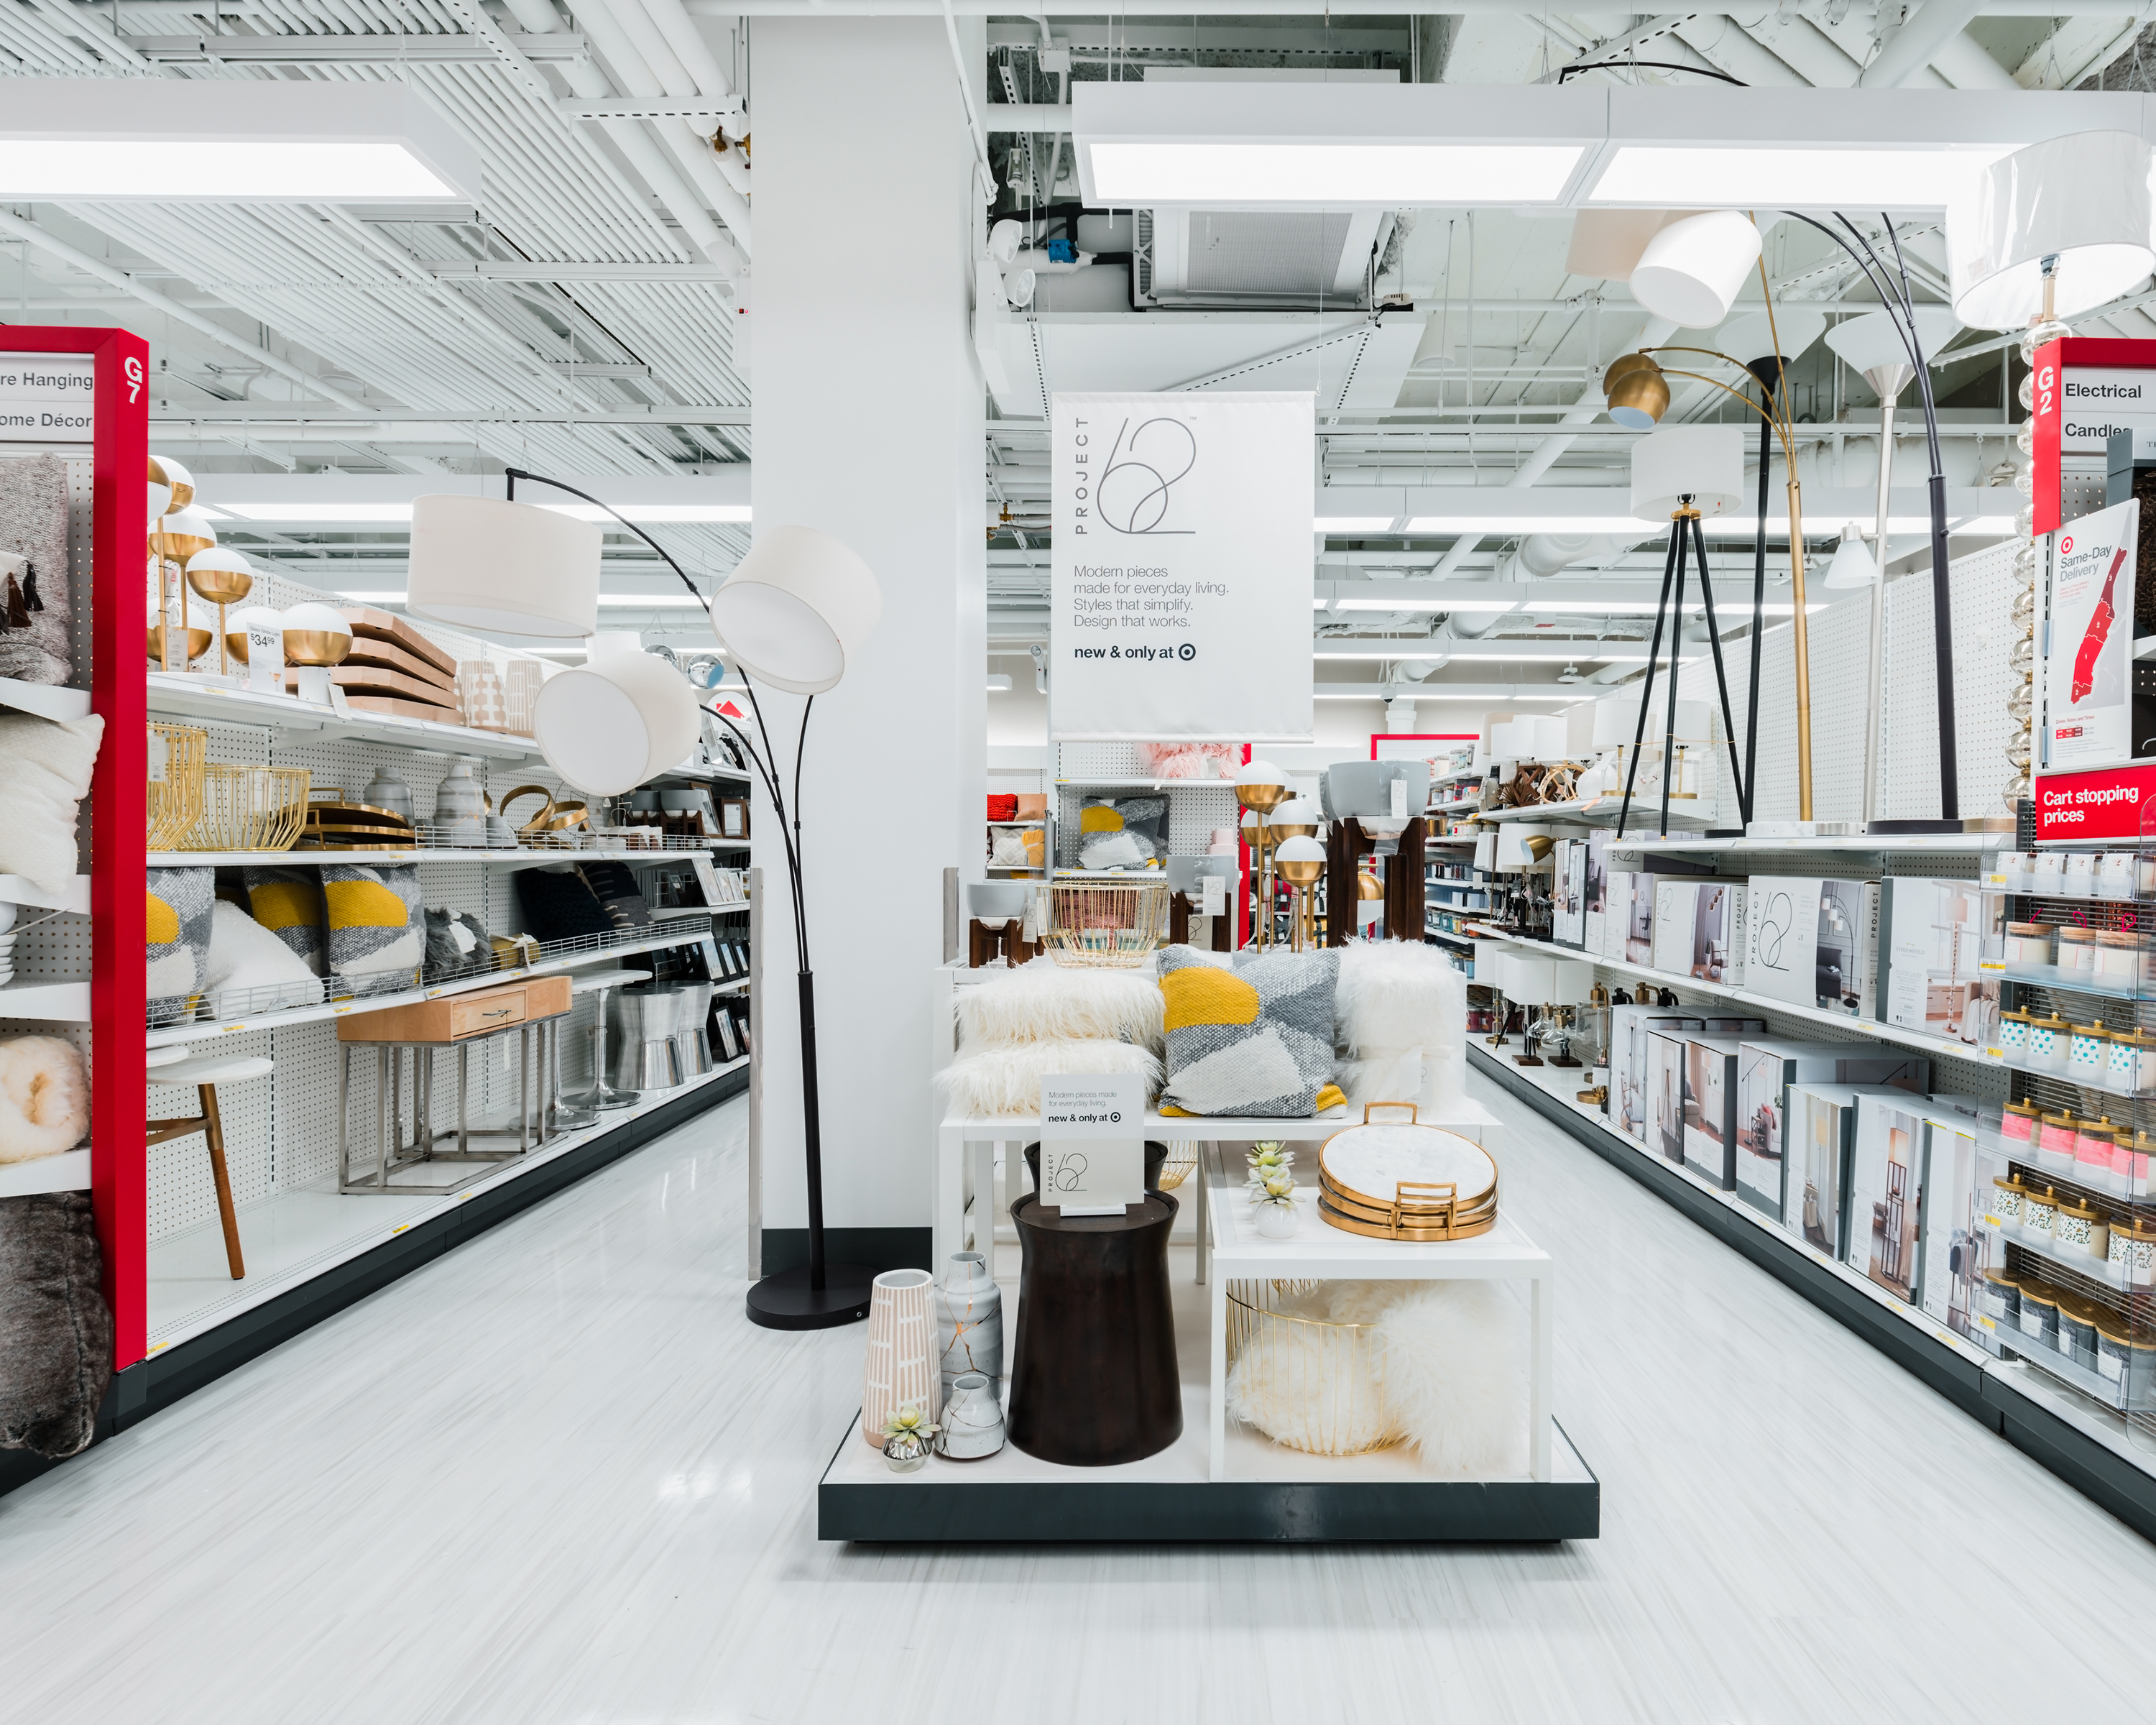 Target Opens 12 New Stores Across The Country, Expands Plans For Remodels  And Target Restock | Business Wire